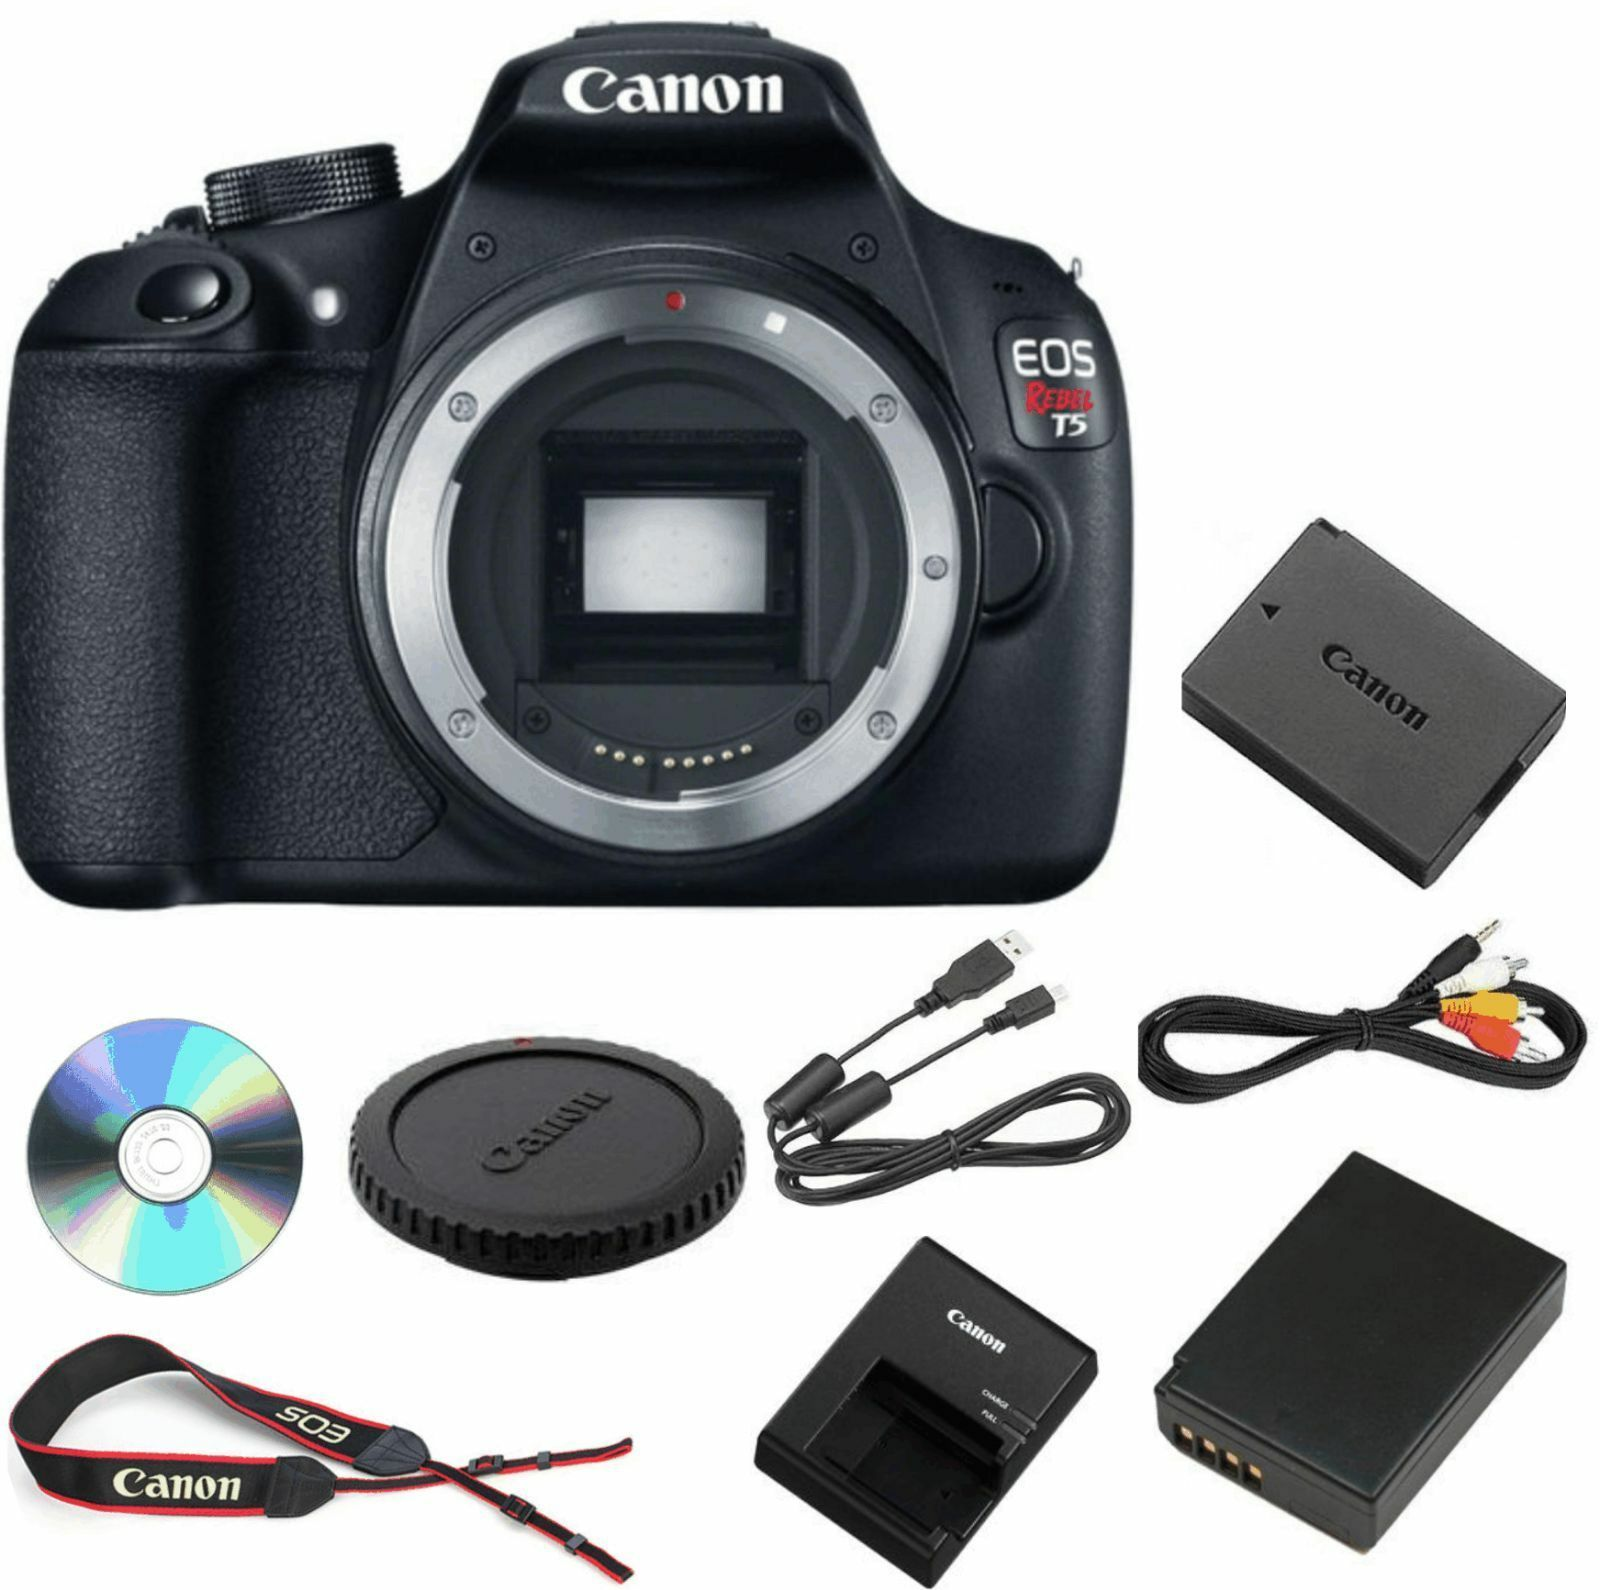 Canon Rebel T5 DSLR 18.0MP Camera w/ EF-S 18-55mm IS II Lens (2 LENSES)